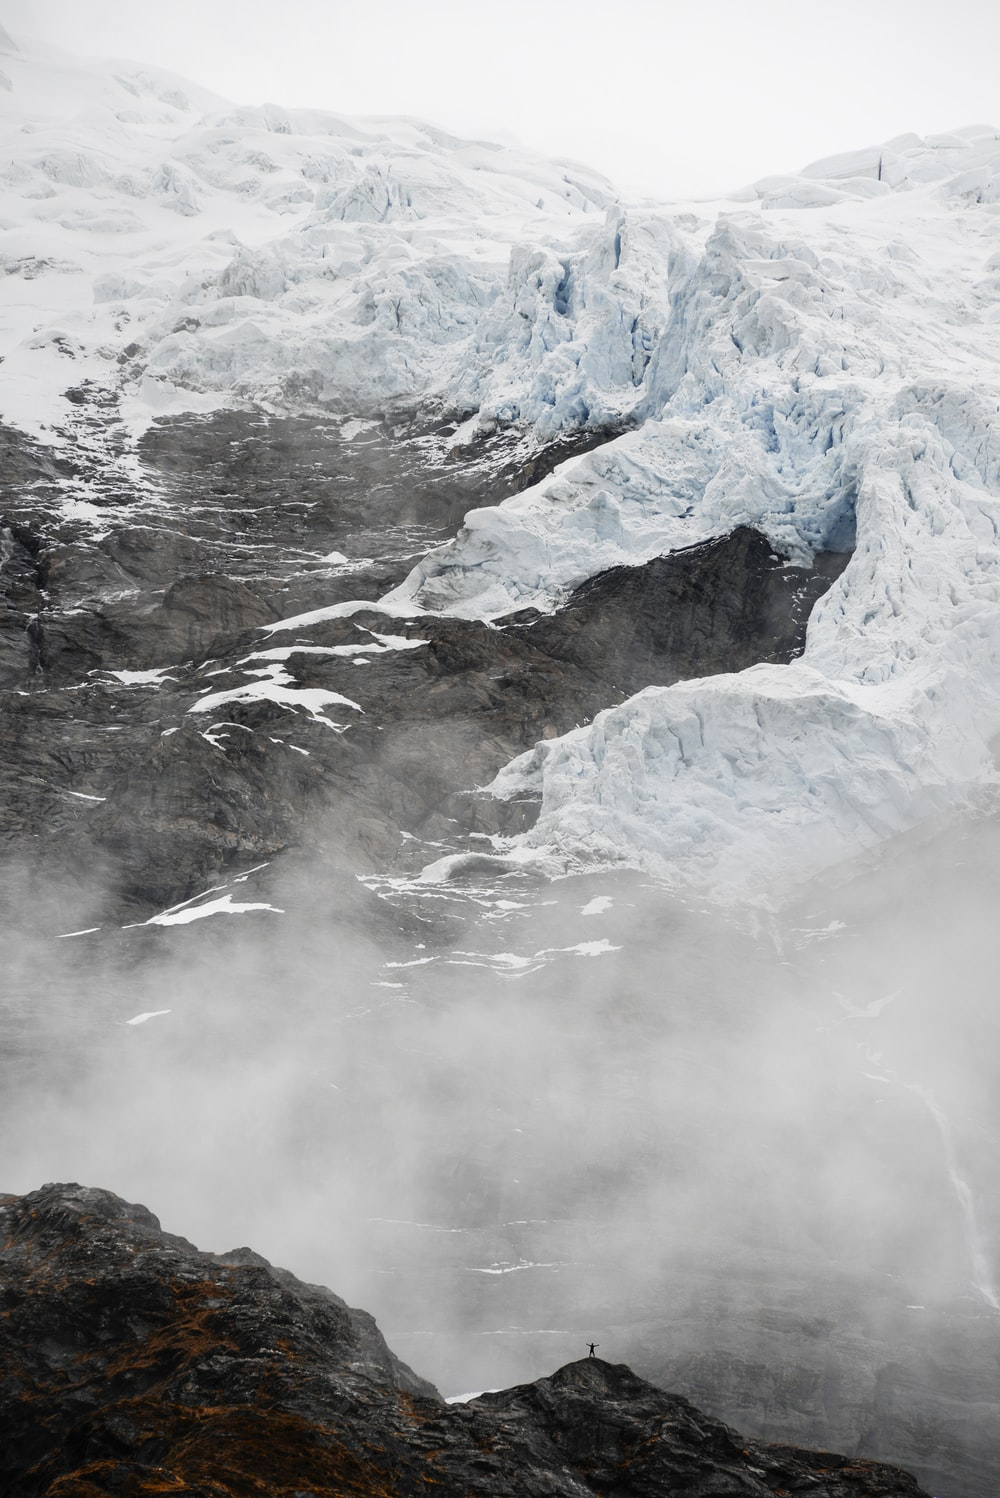 mountains covered with snow and fog